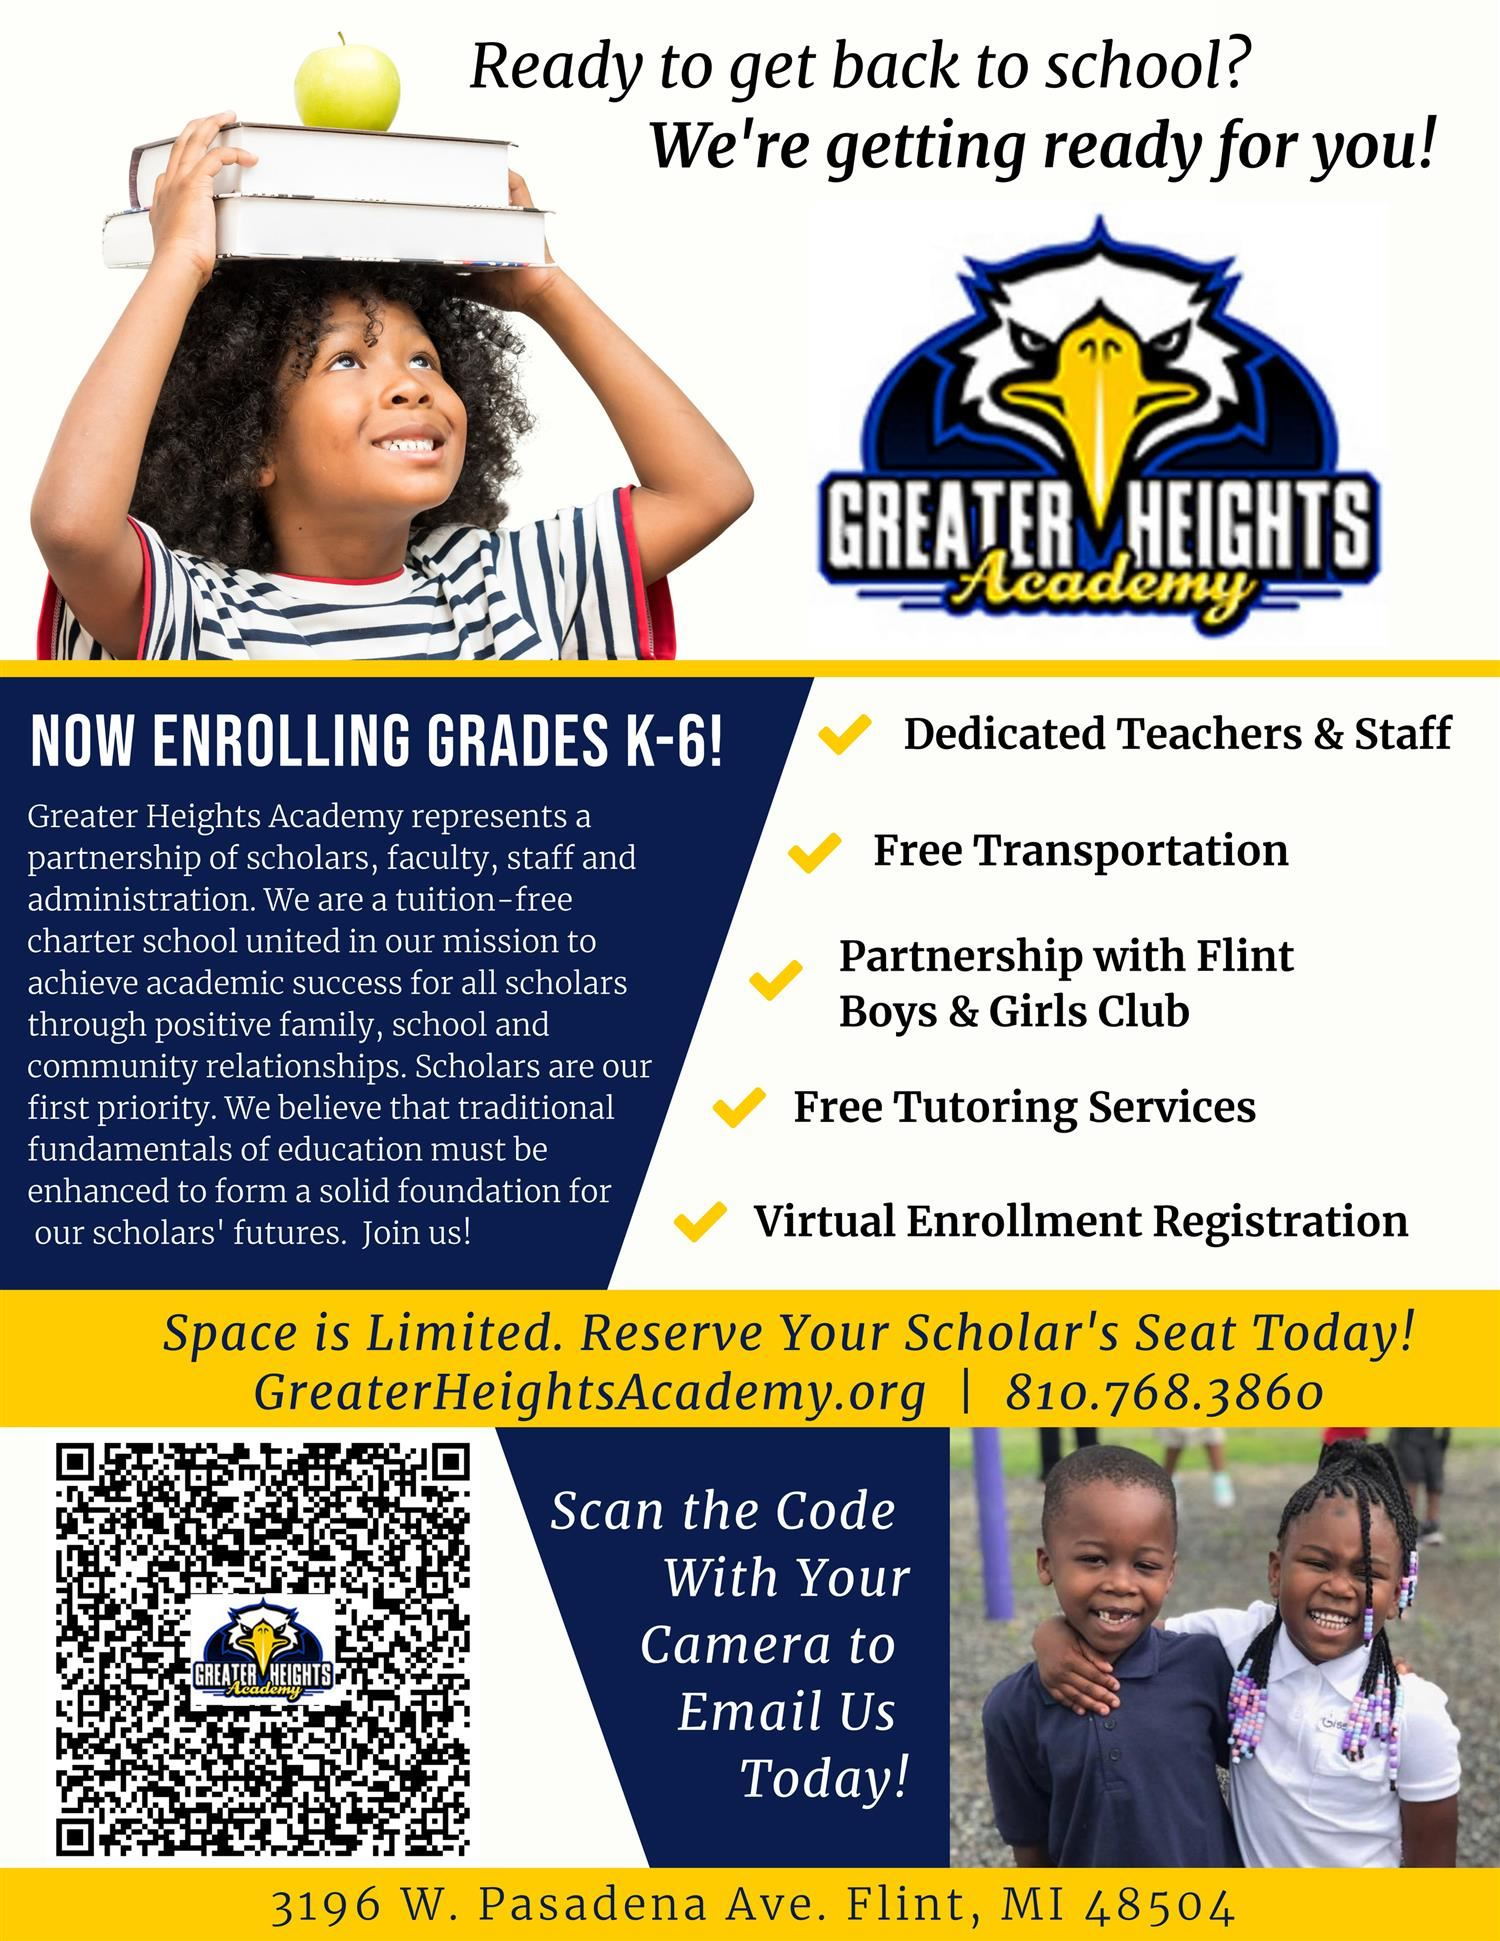 Greater Heights Academy